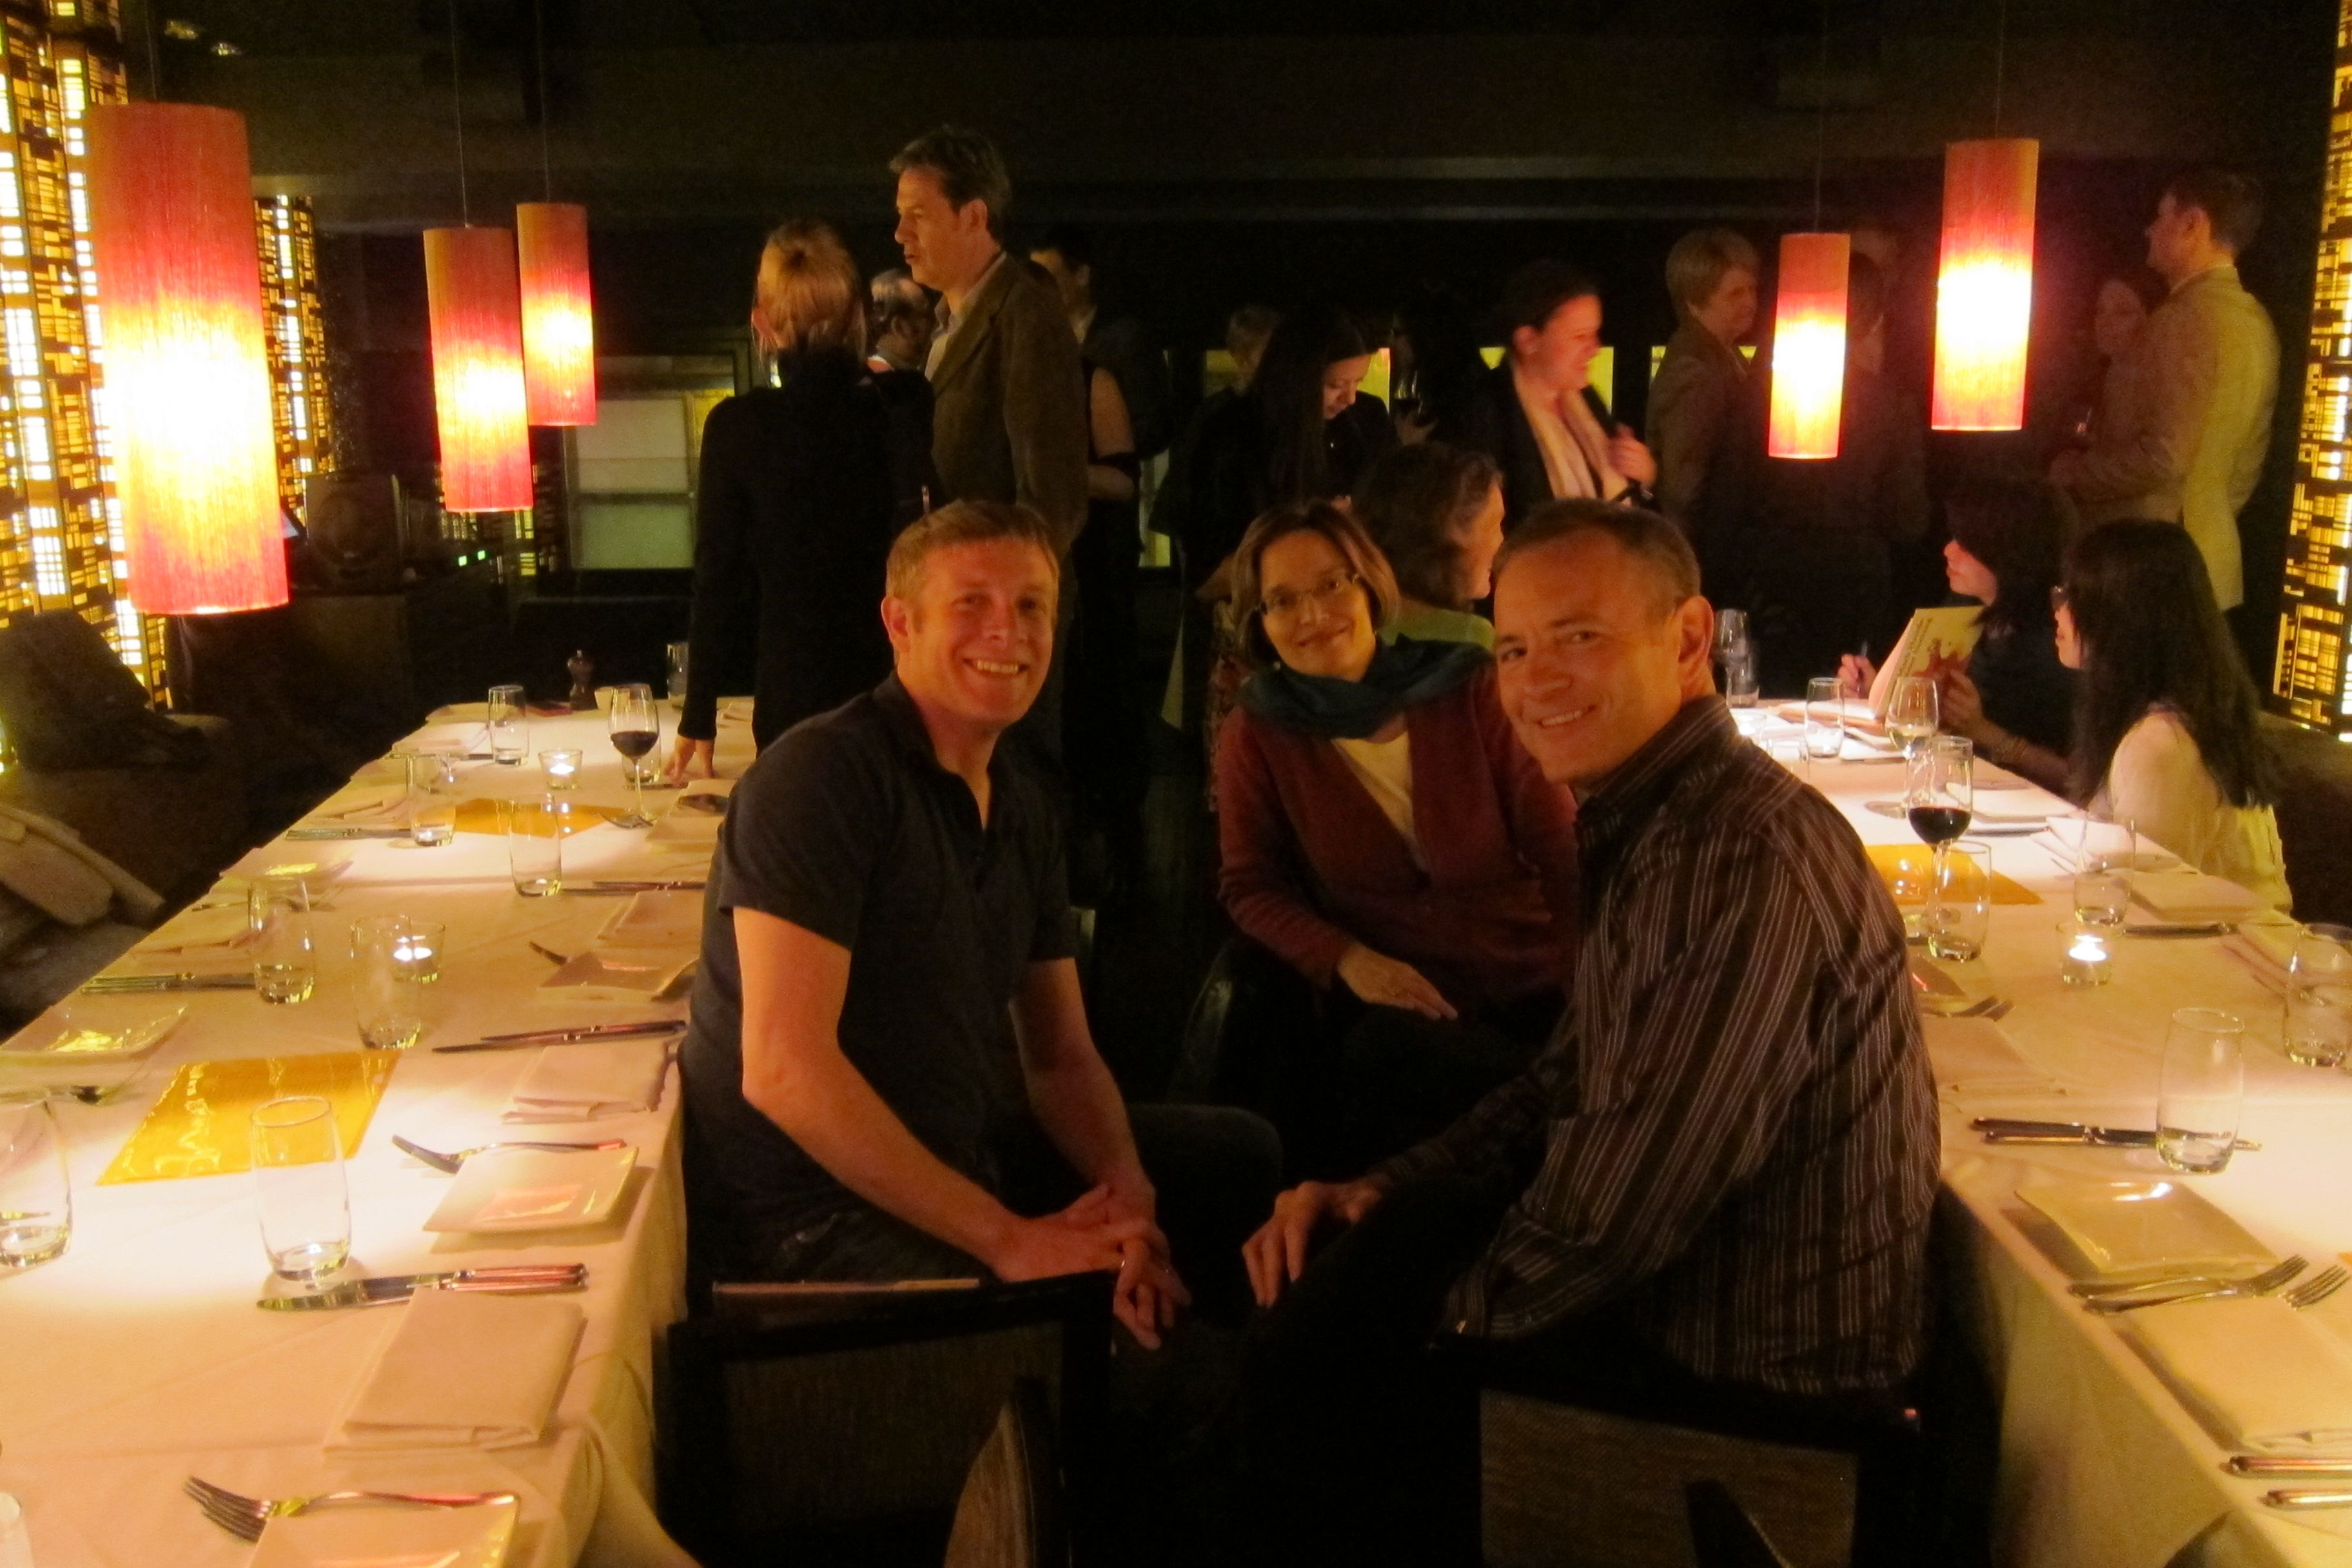 SCBWI HK gathered for a Xmas Social in the private room of 'Vivo' - to chat, enjoy delicious food and drink, laugh and talk about books! A lovely evening!